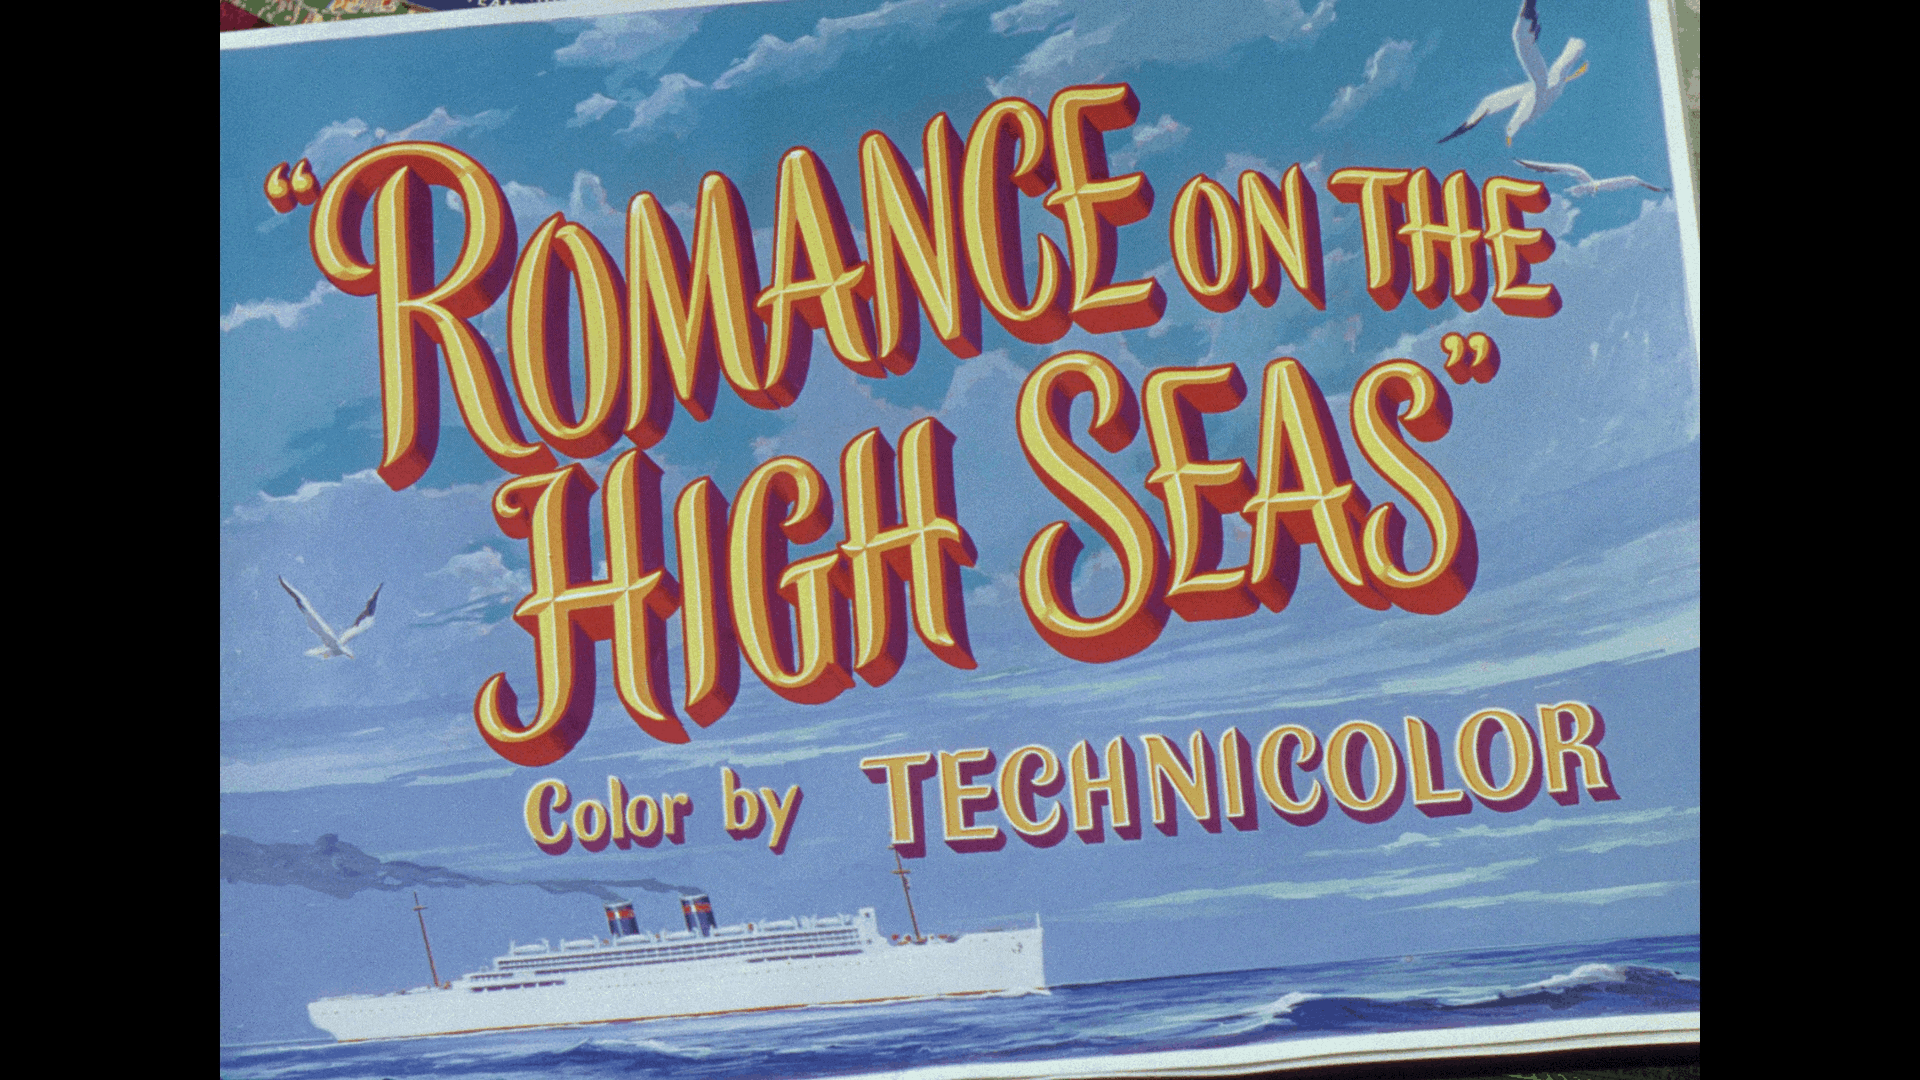 ROMANCE ON THE HIGH SEAS TITLE